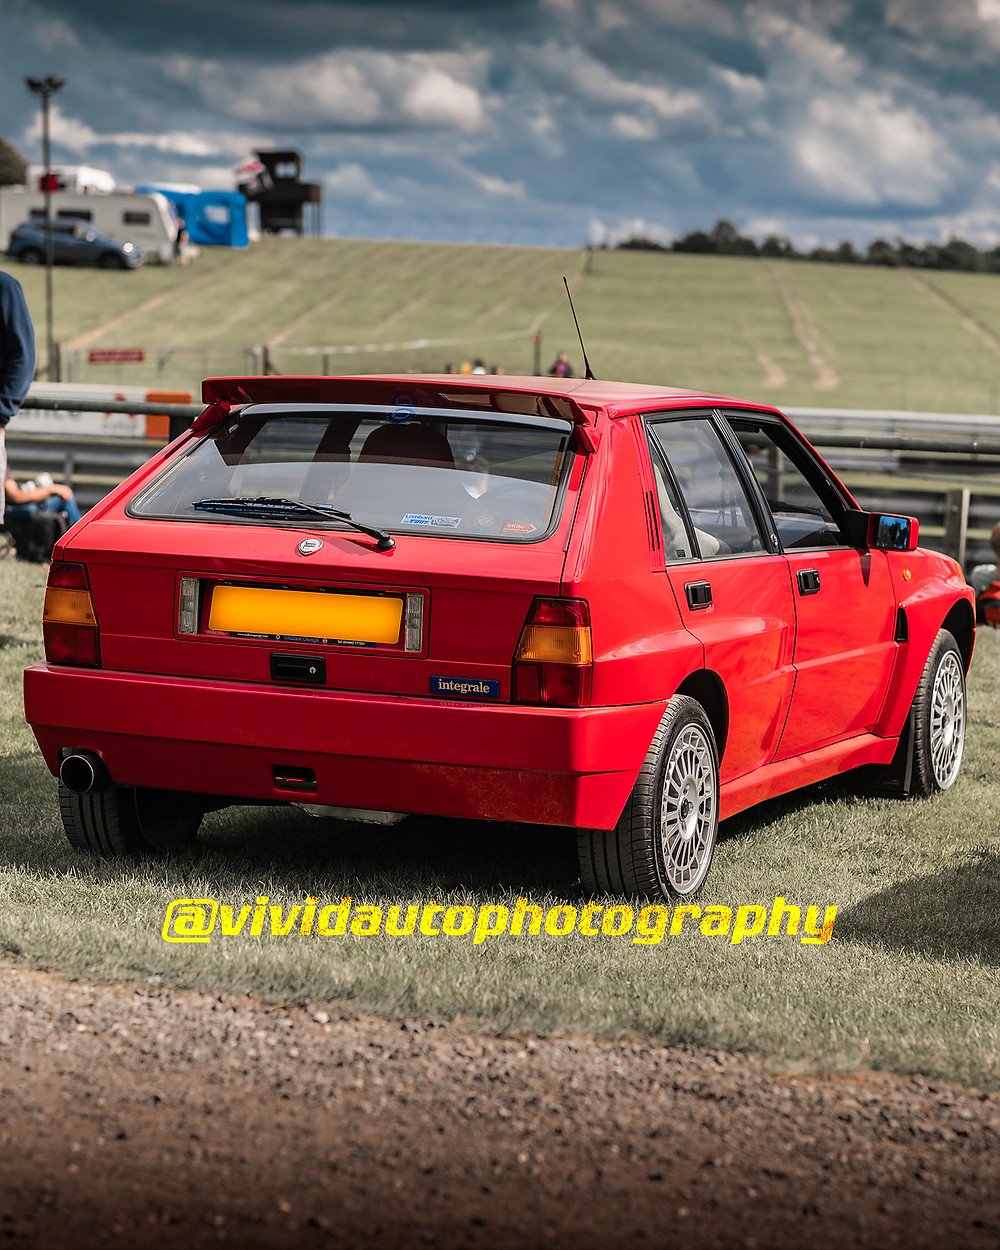 Lancia Delta HF Integrale EVO | Monza Red | Rear three quarters poster